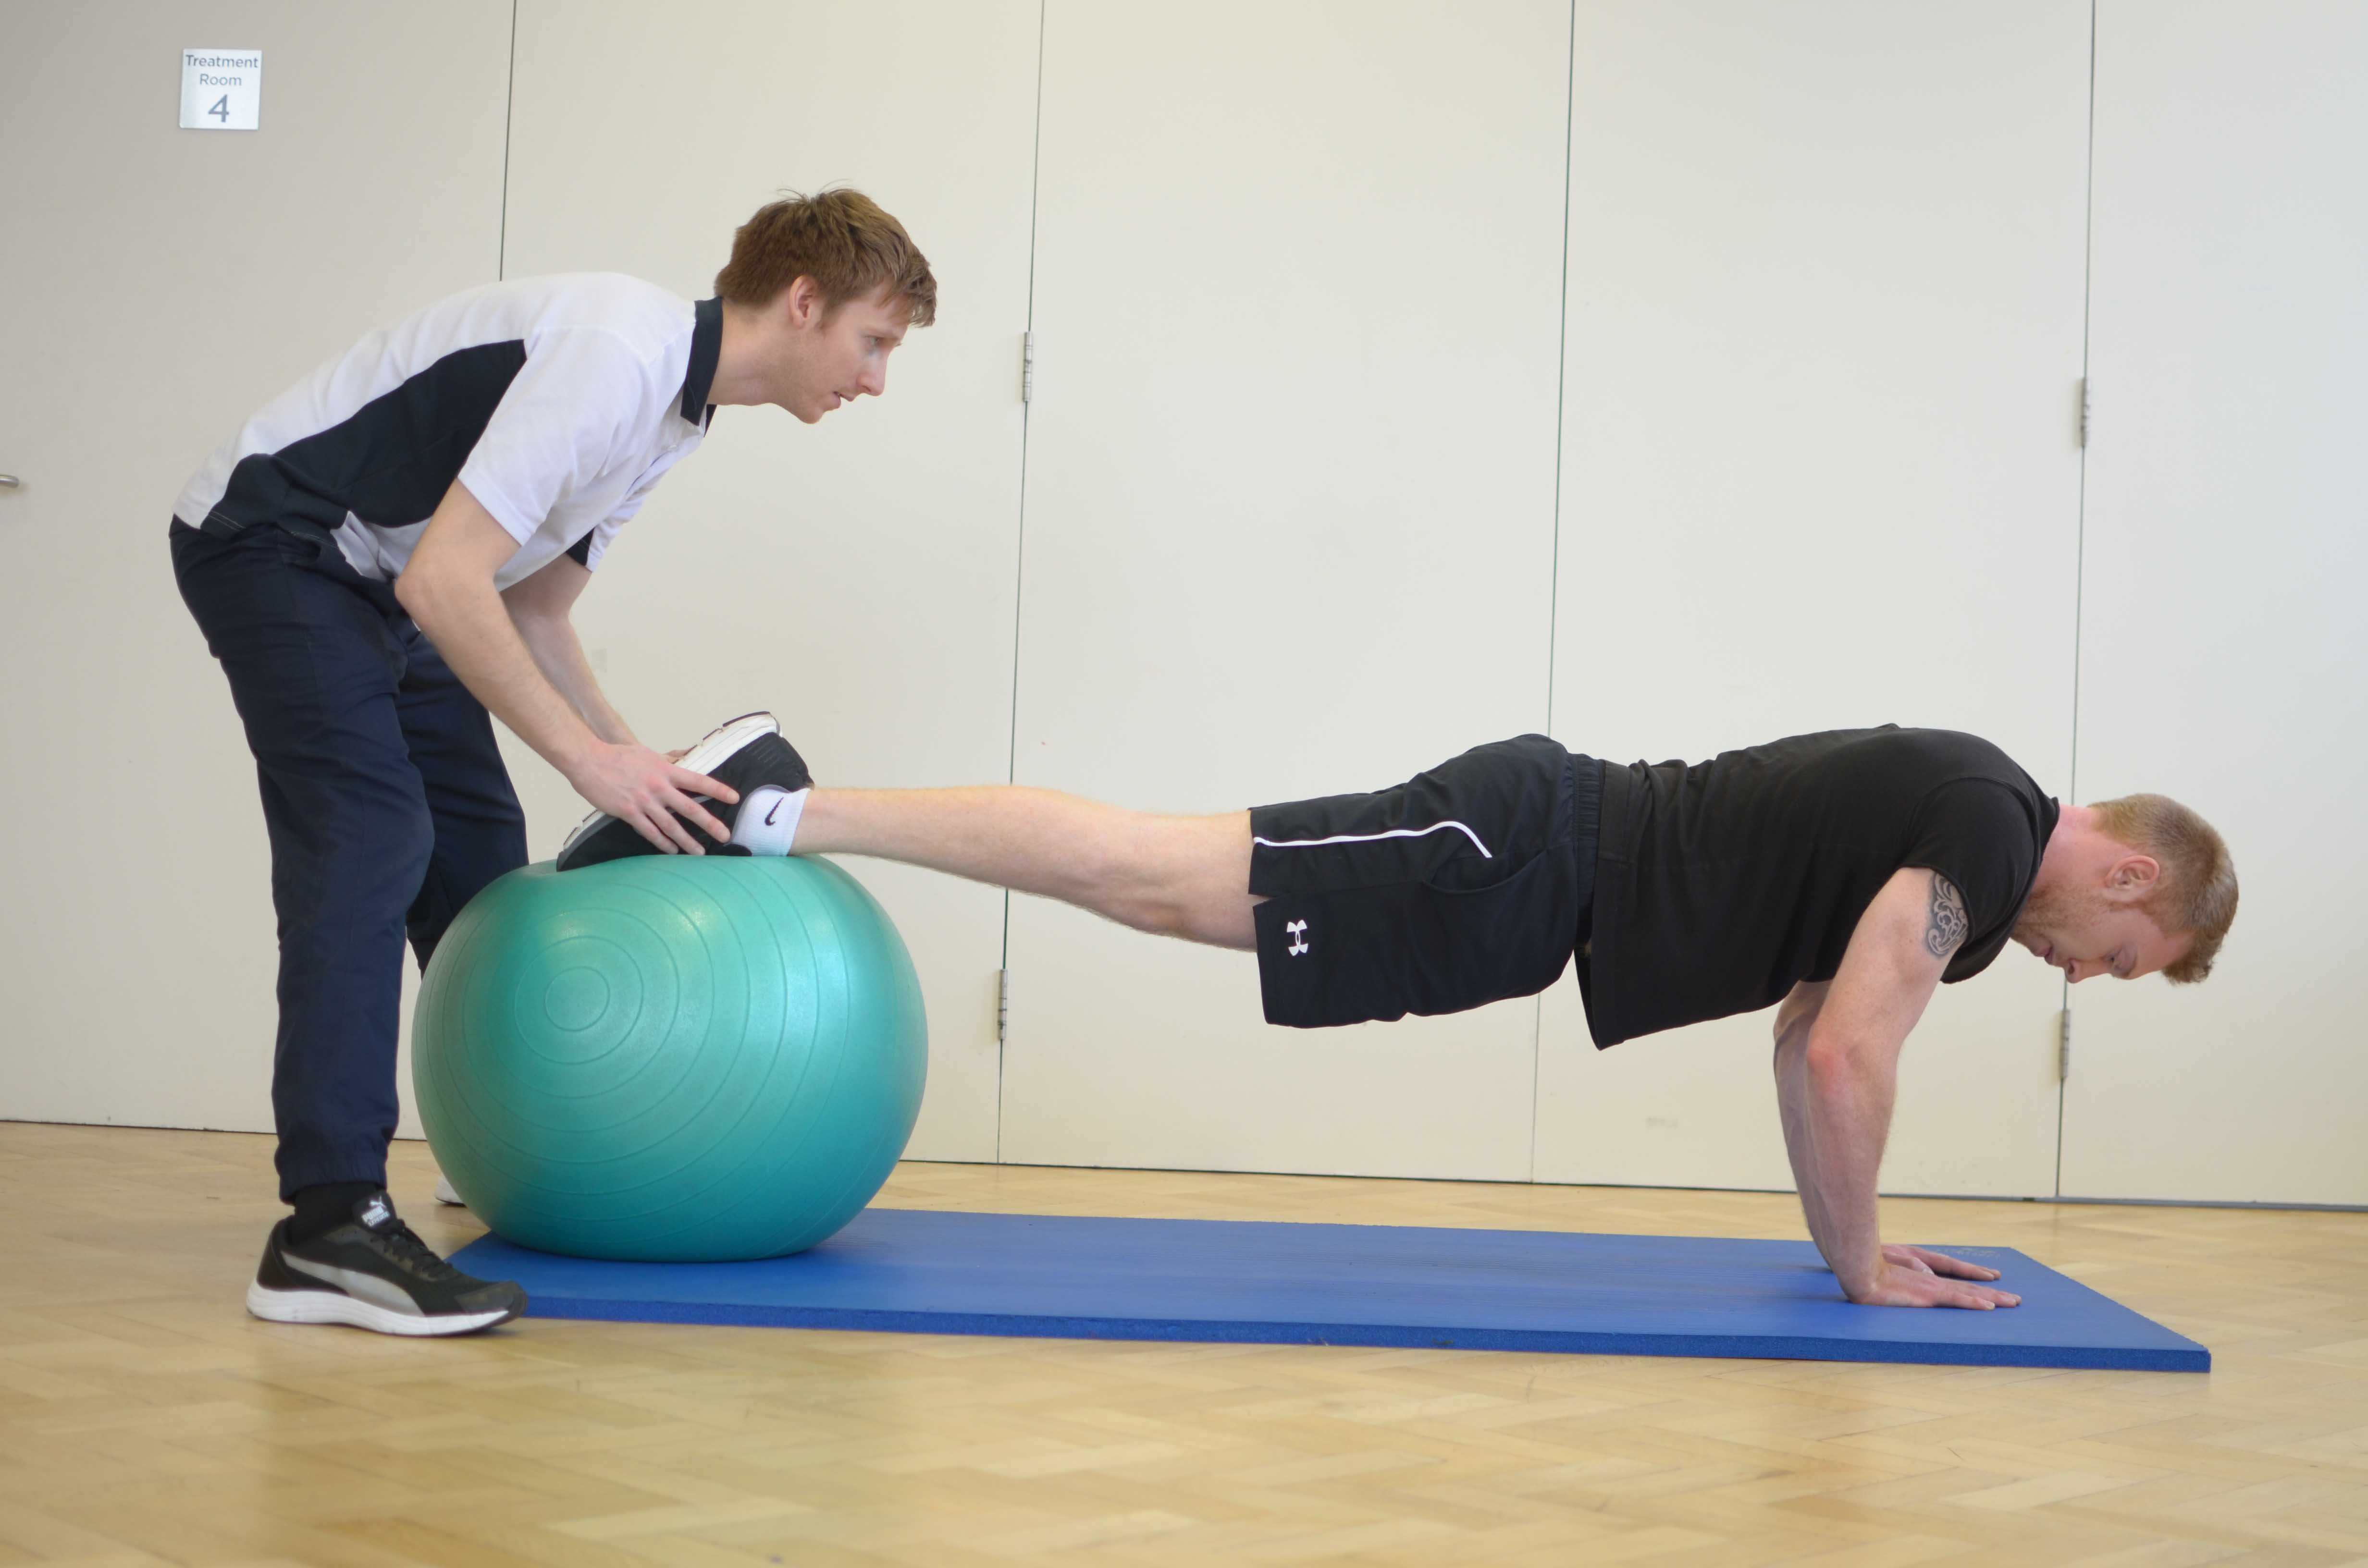 Strengthening exercises for the chest muscles supervised by MSK Physiotherapist